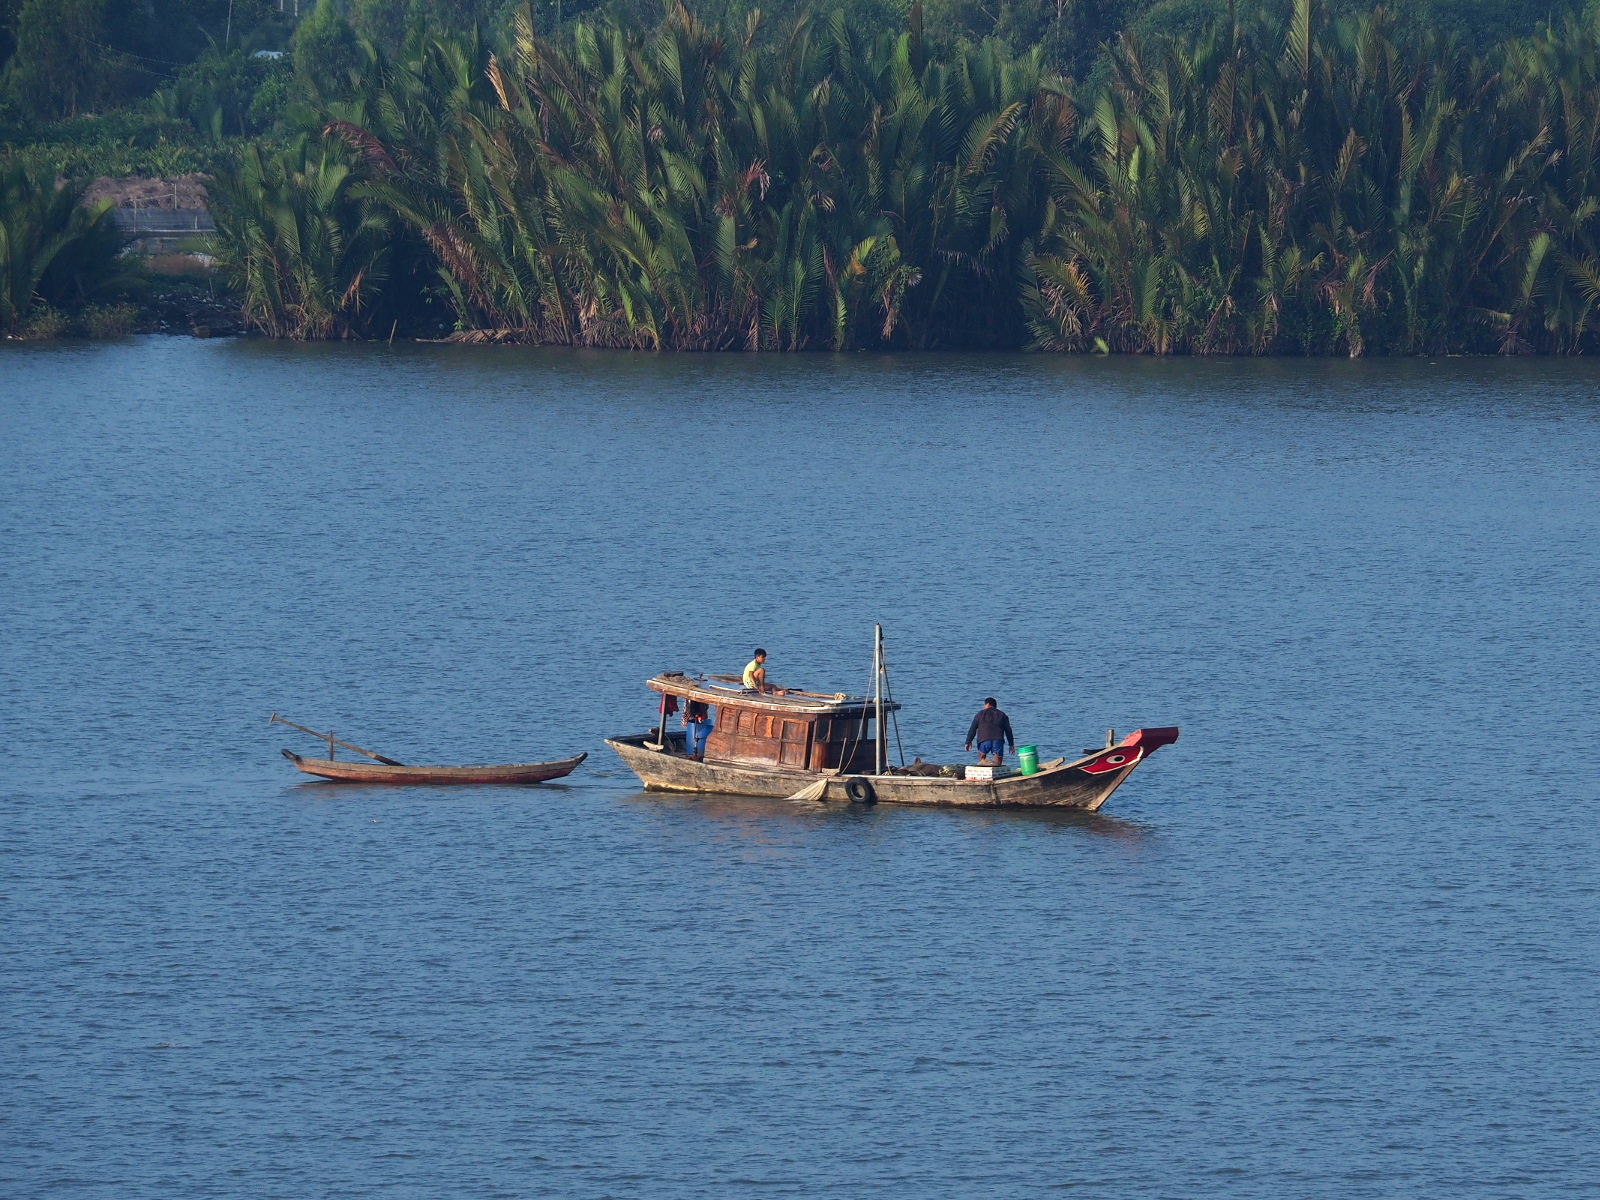 Fishing boat on Mekong